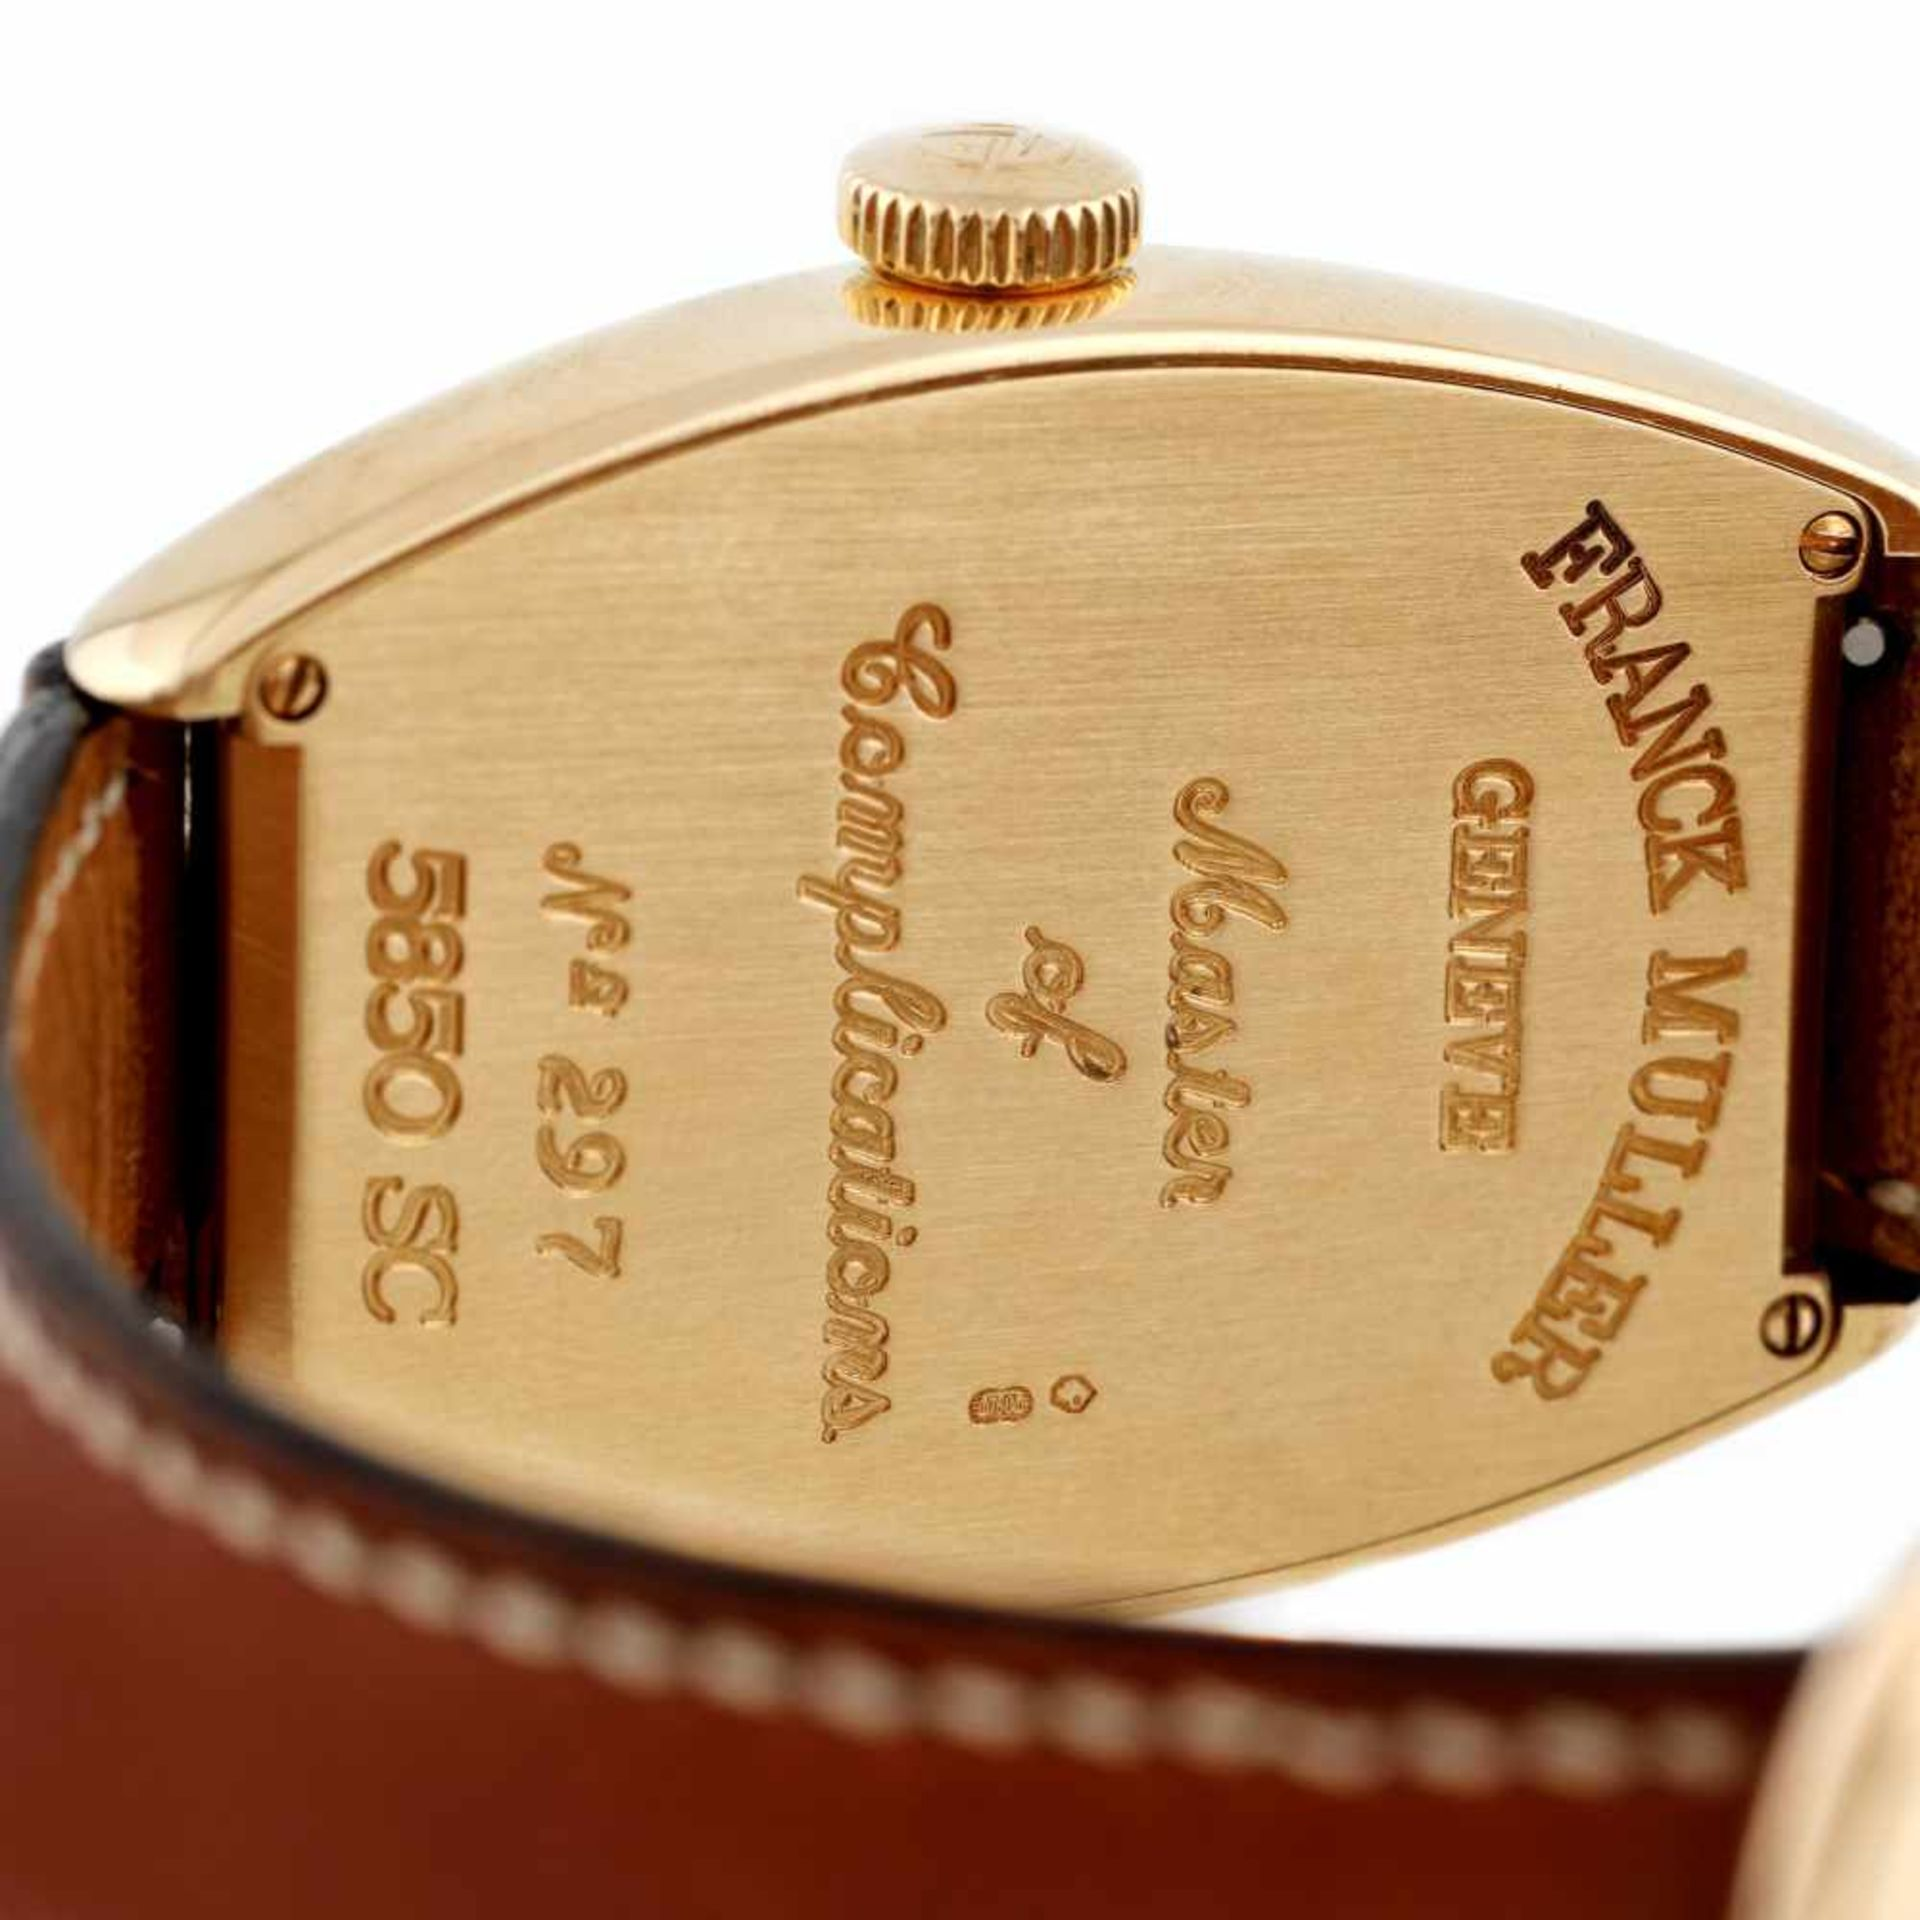 Franck Muller Casablanca wristwatch, gold, men, provenance documents - Bild 3 aus 4